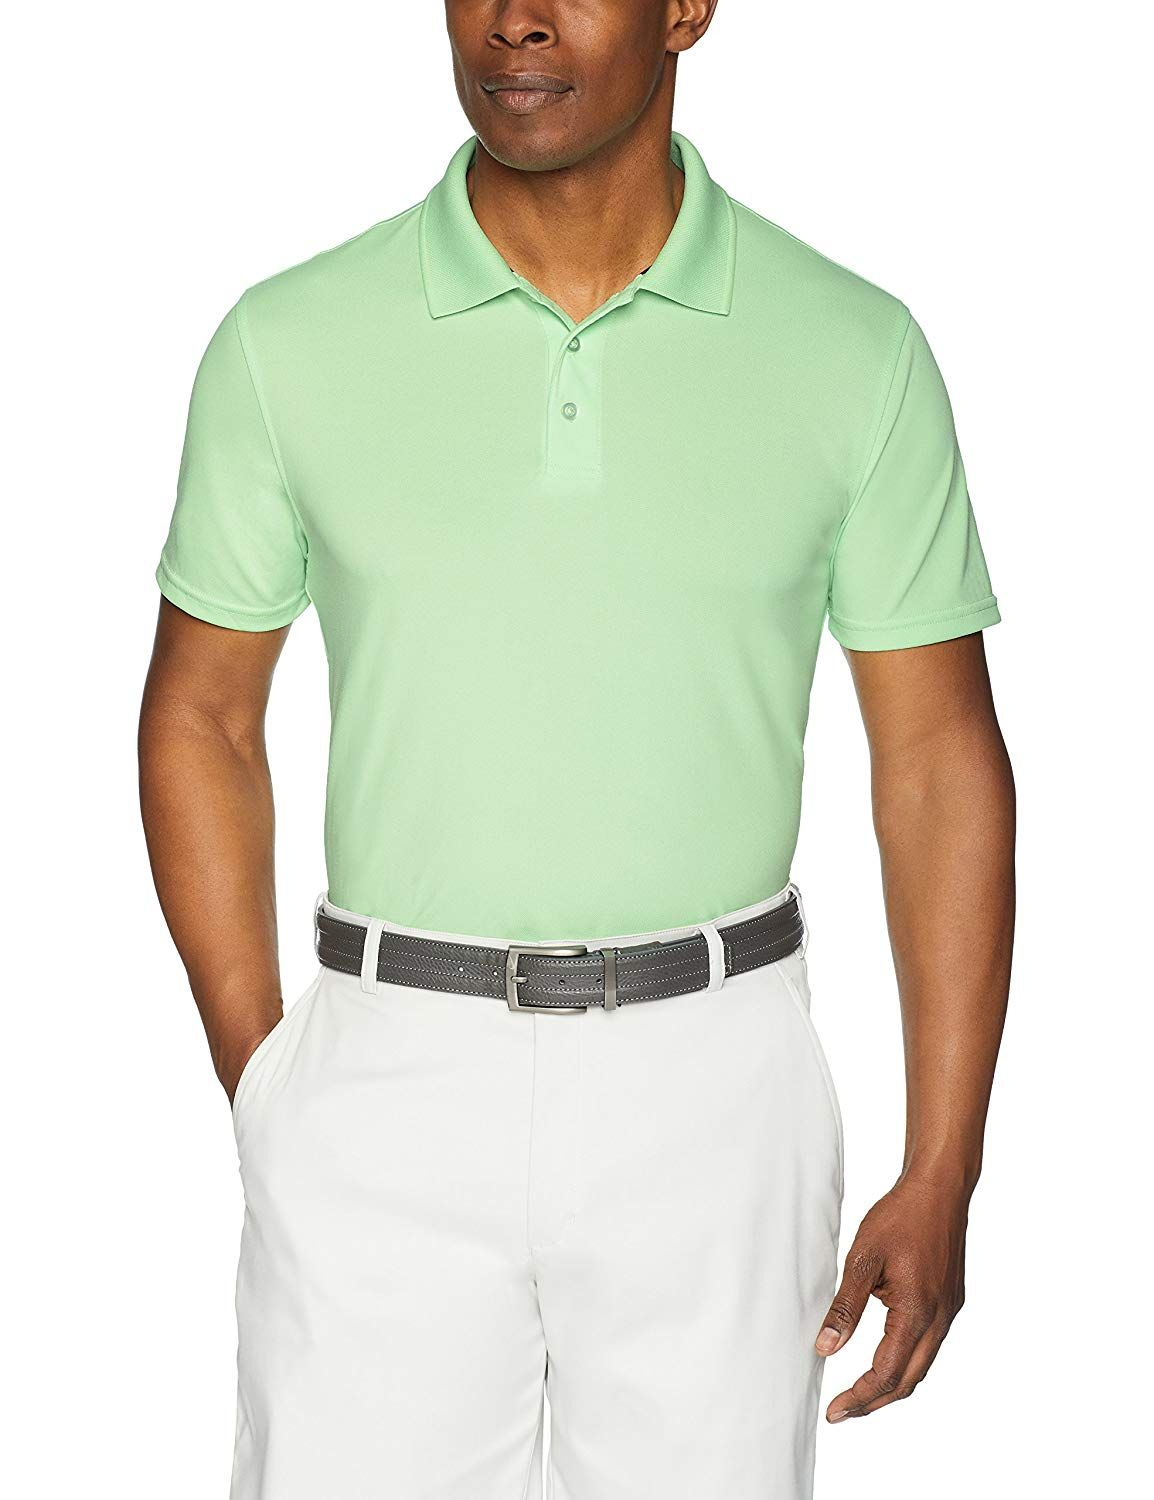 e85d6da22 Amazon.com: Amazon Essentials Men's Standard Slim-Fit Quick-Dry Golf Polo  Shirt, Coral, Medium: Clothing